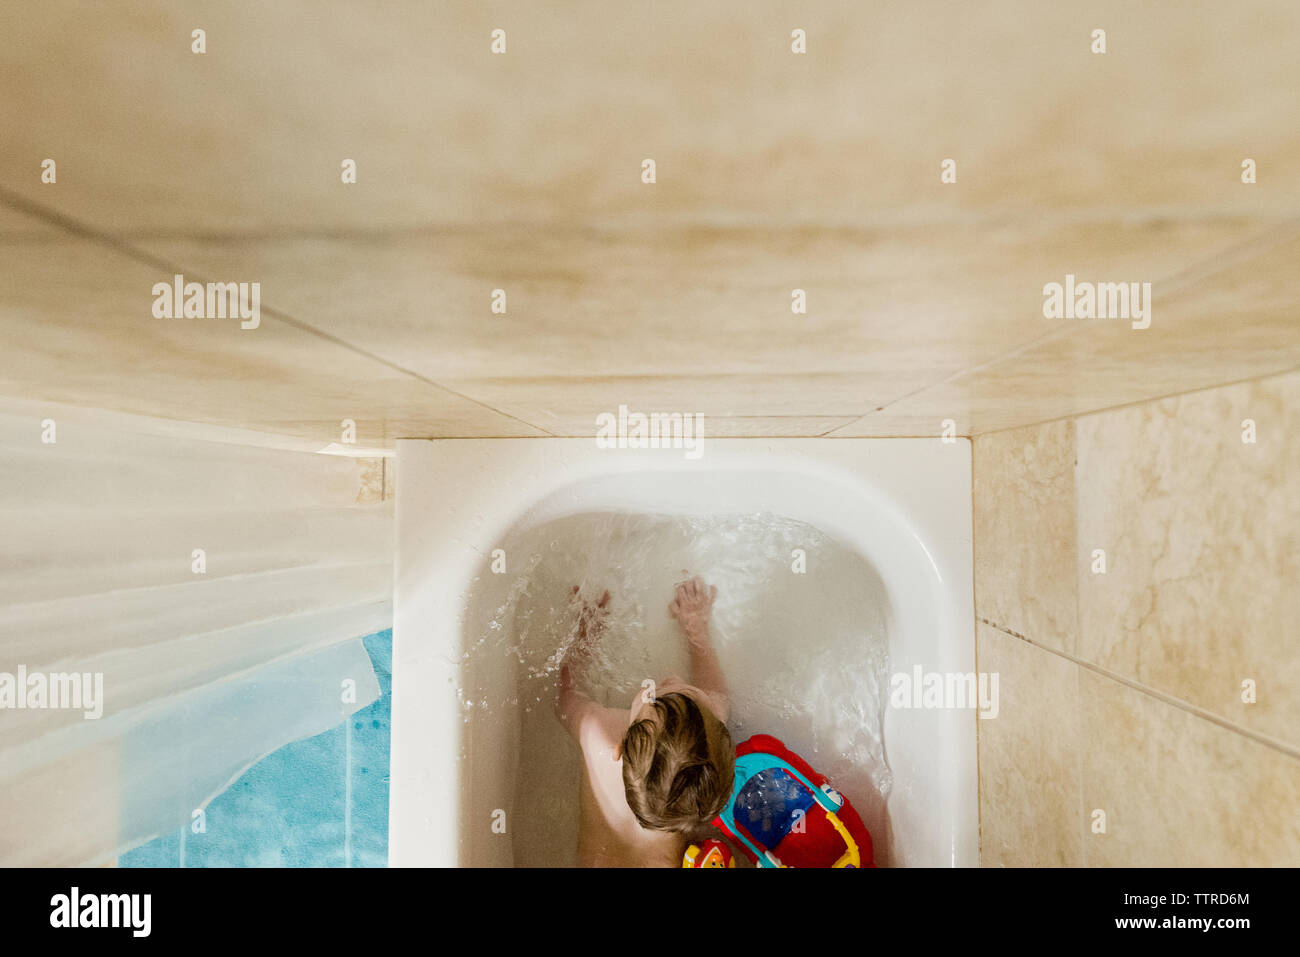 Overhead view of boy playing with toys in bath tub - Stock Image